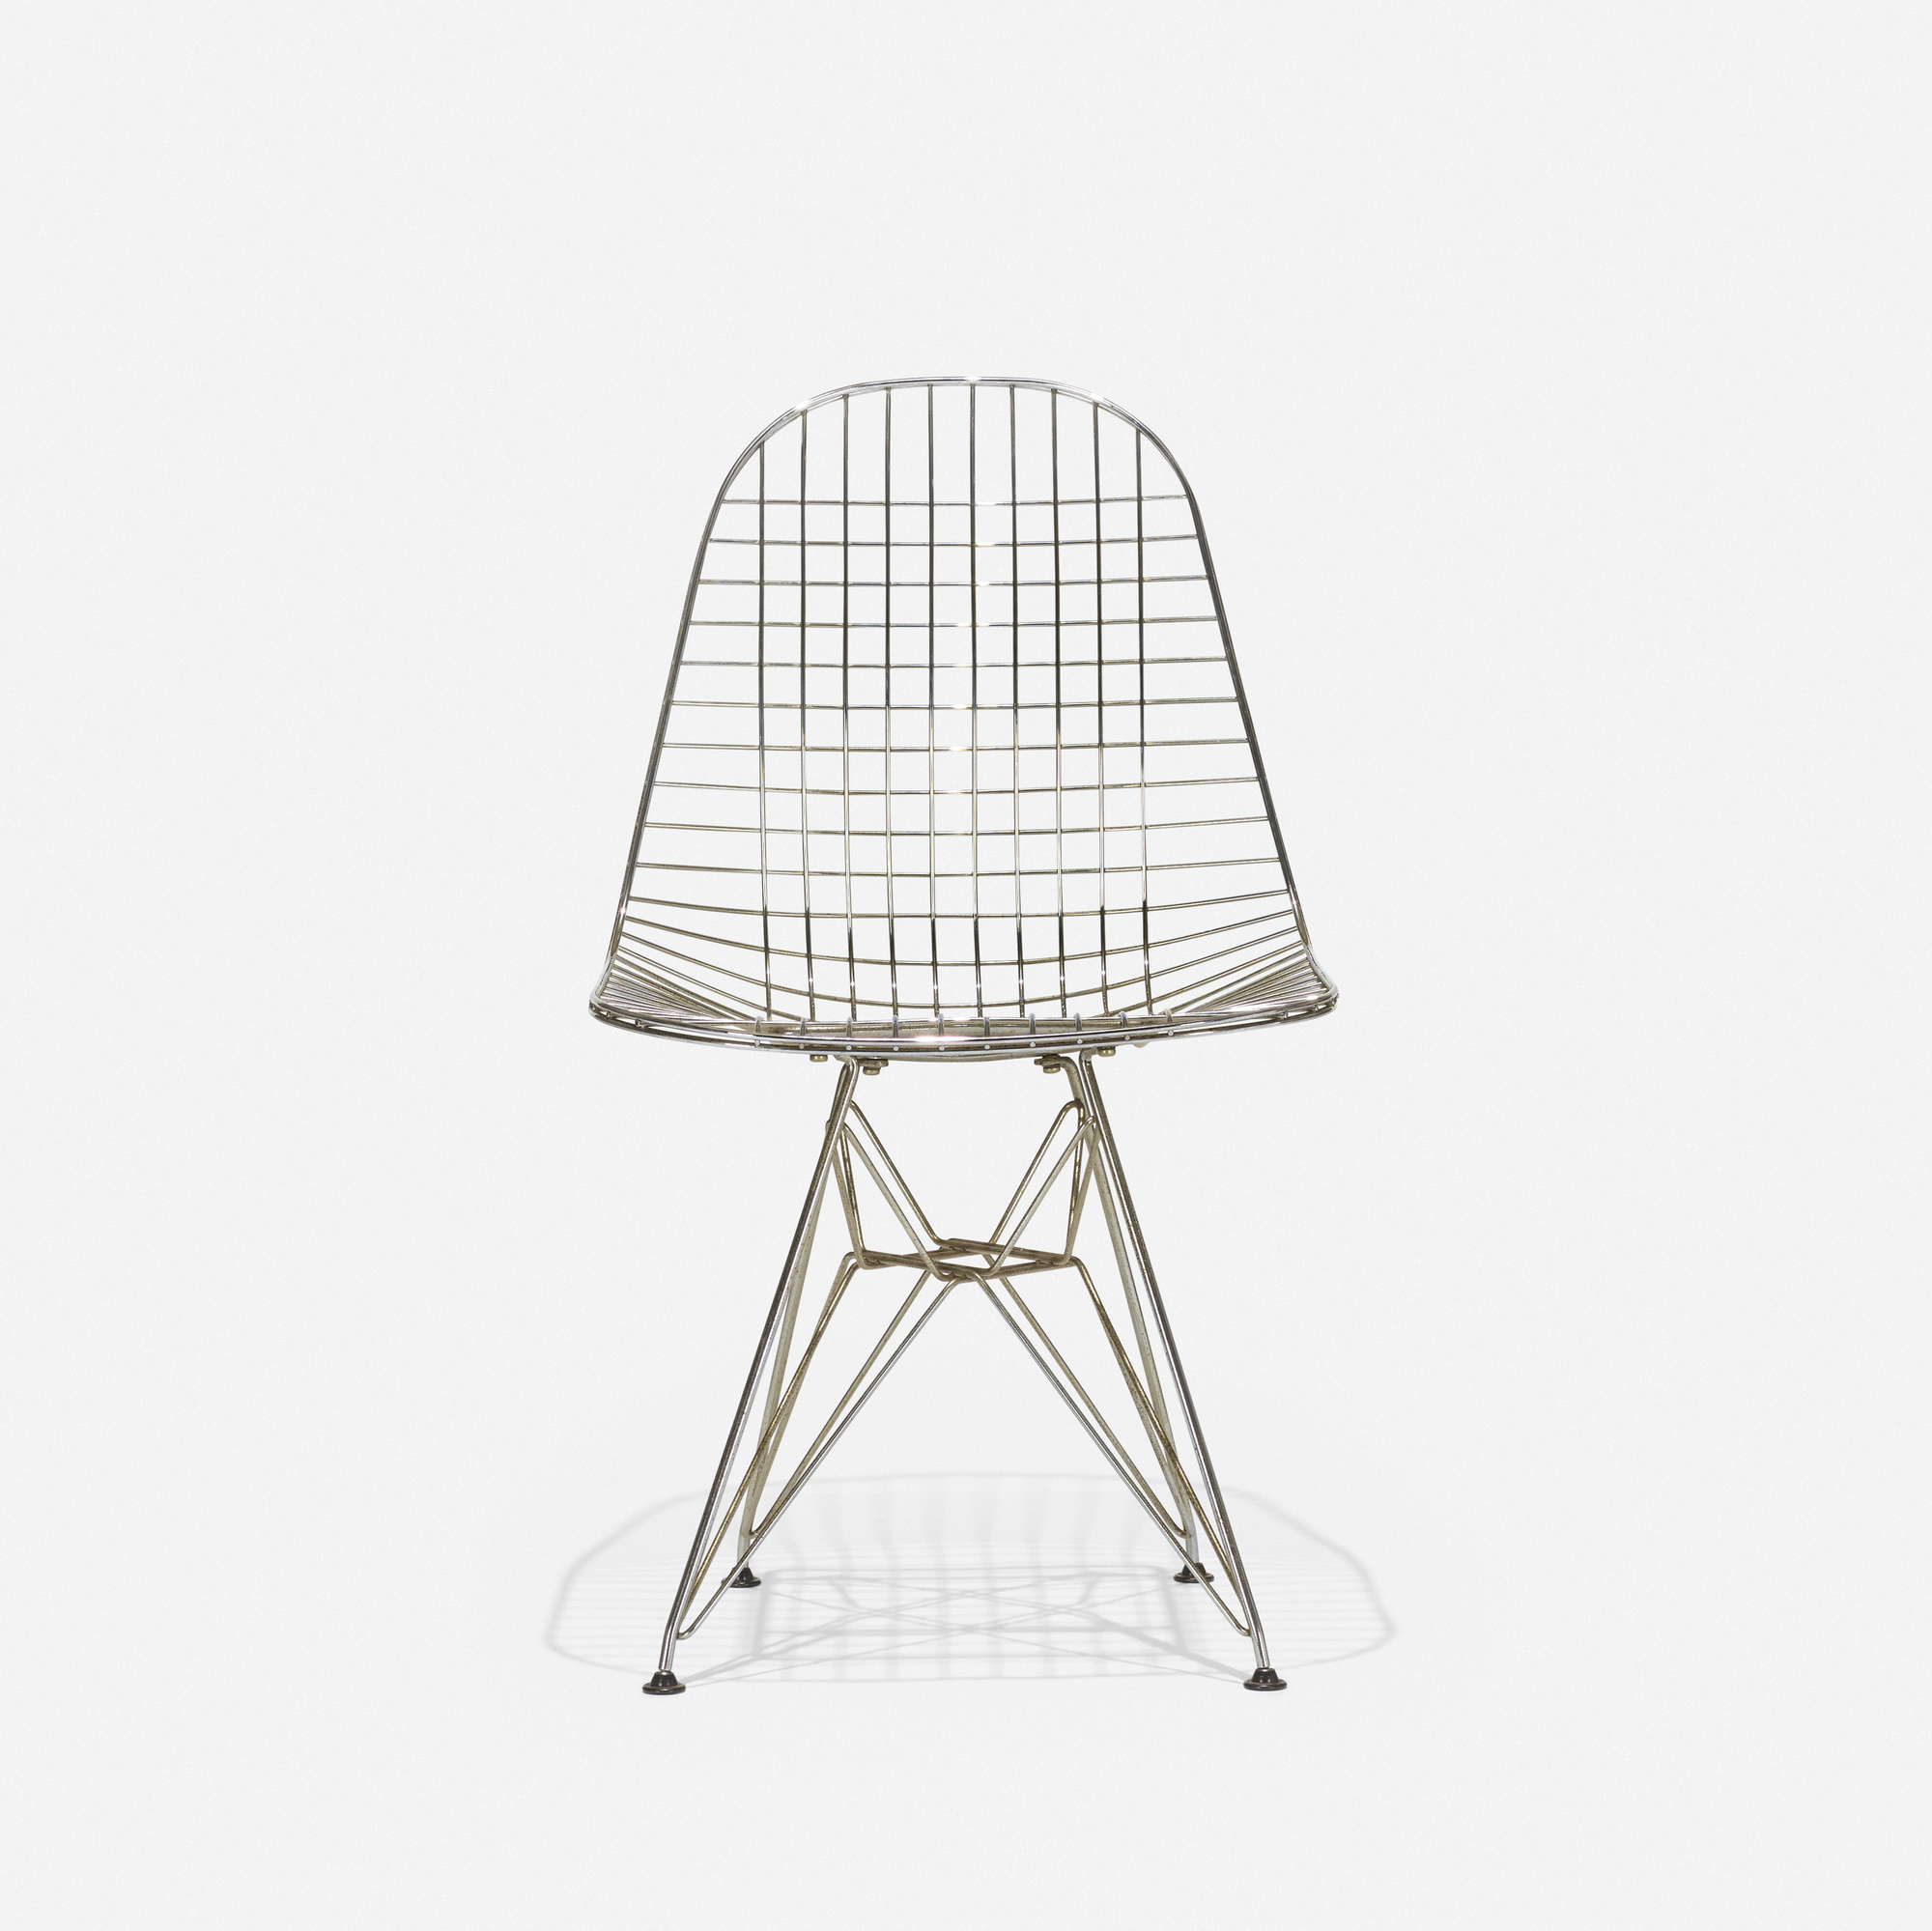 233: Charles and Ray Eames / DKR (1 of 3)